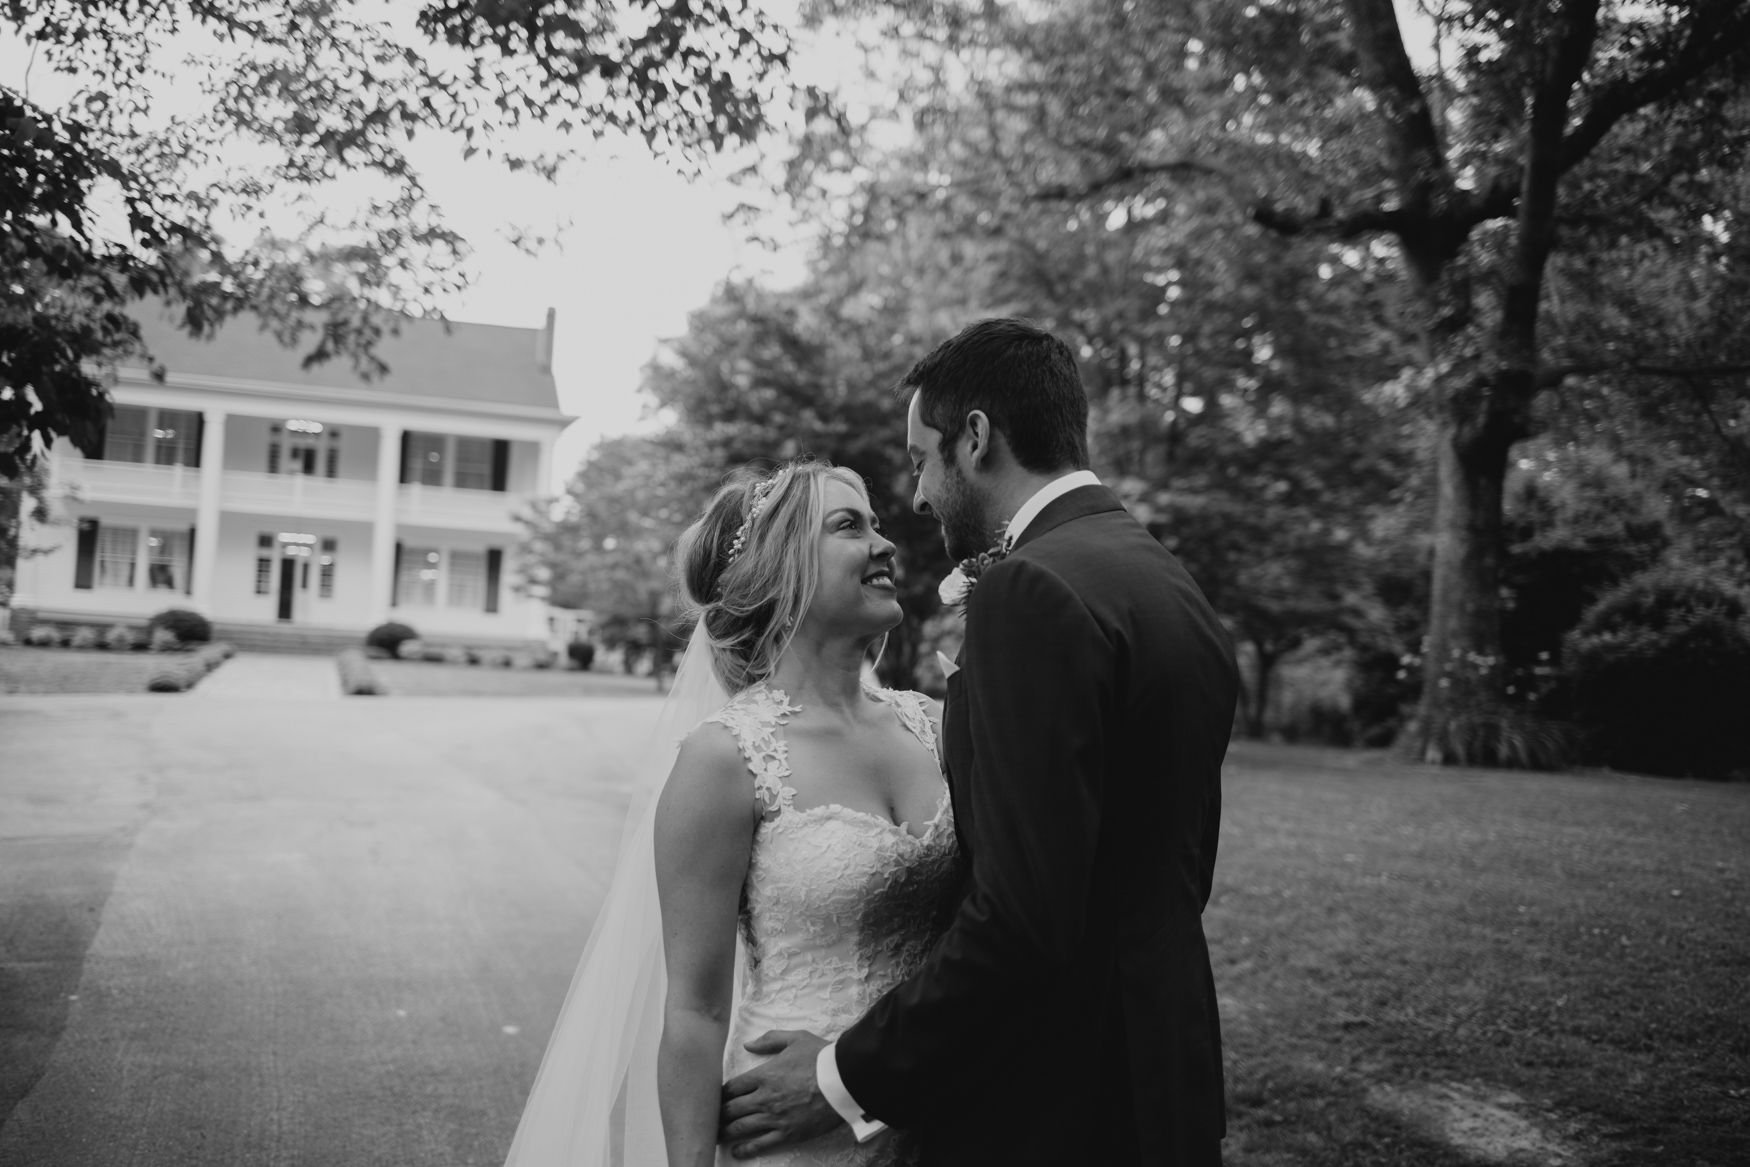 ogletree estates wedding, destination wedding photographer, wedding photographer georgia, charlotte wedding photographer, nyc wedding photographer,